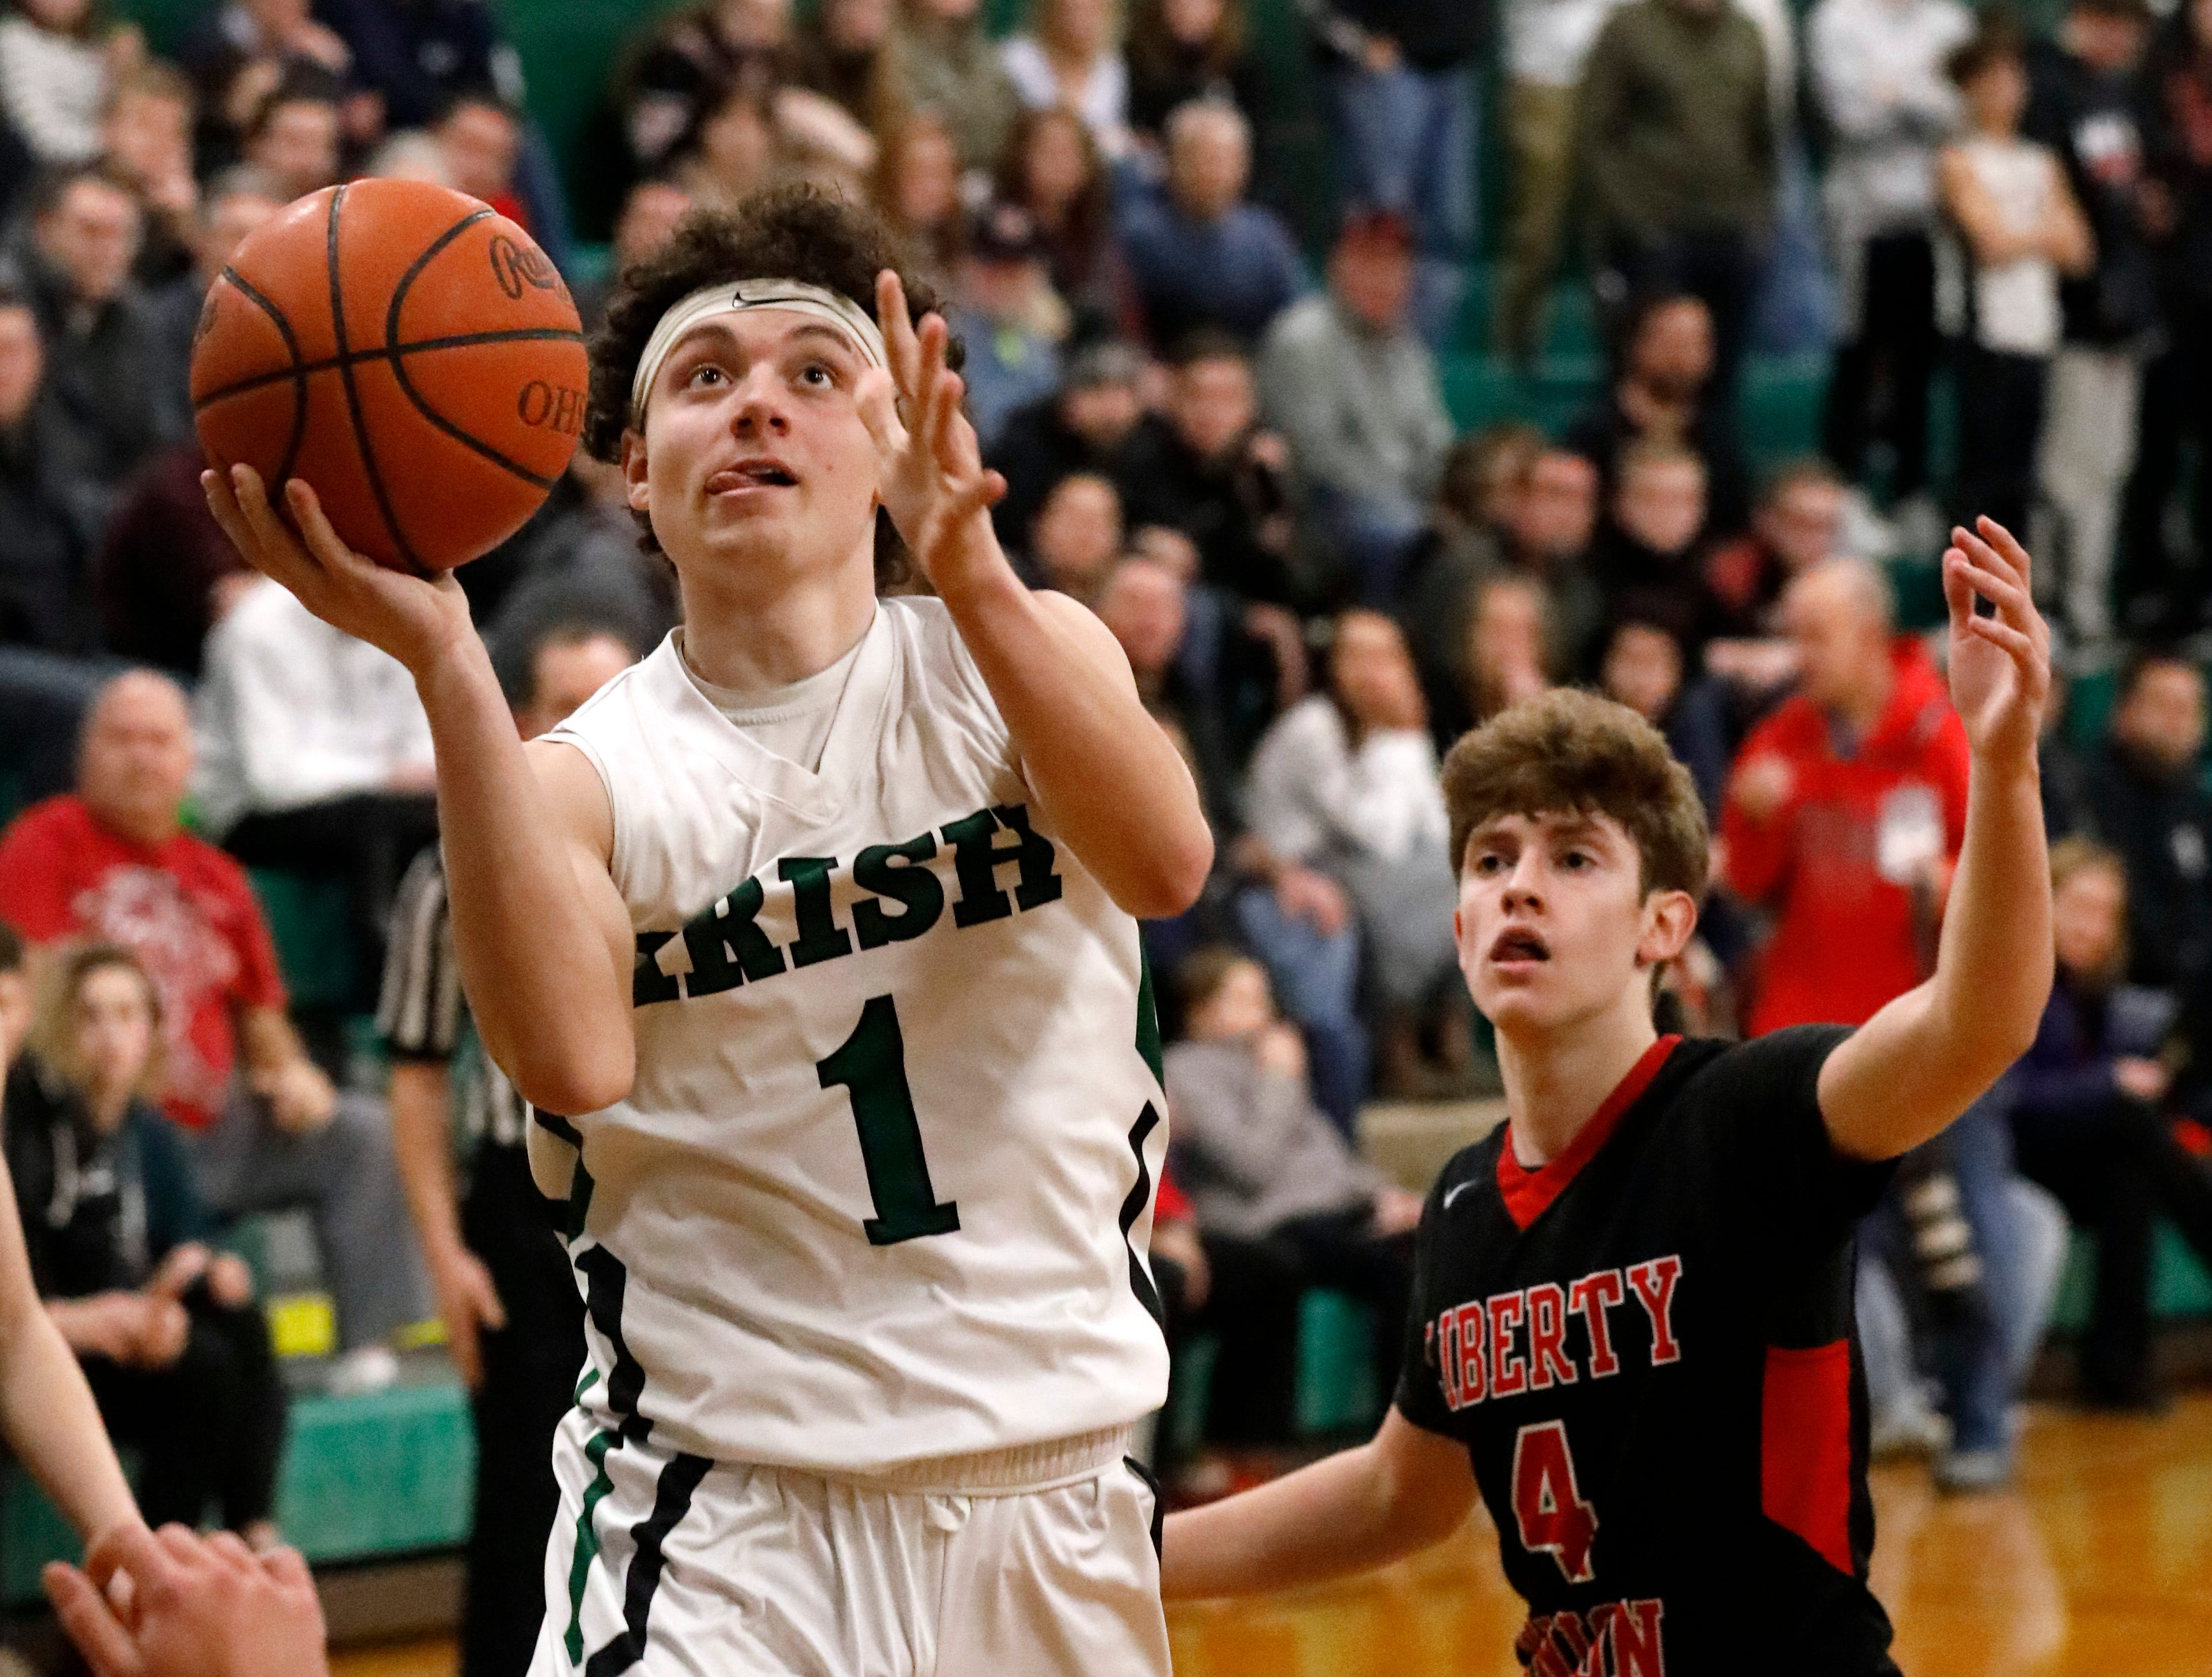 Fisher Catholic's Peyton Shockley goes in for a layup during Thursday night's game, Jan. 10, 2019, at Fisher Catholic High School in